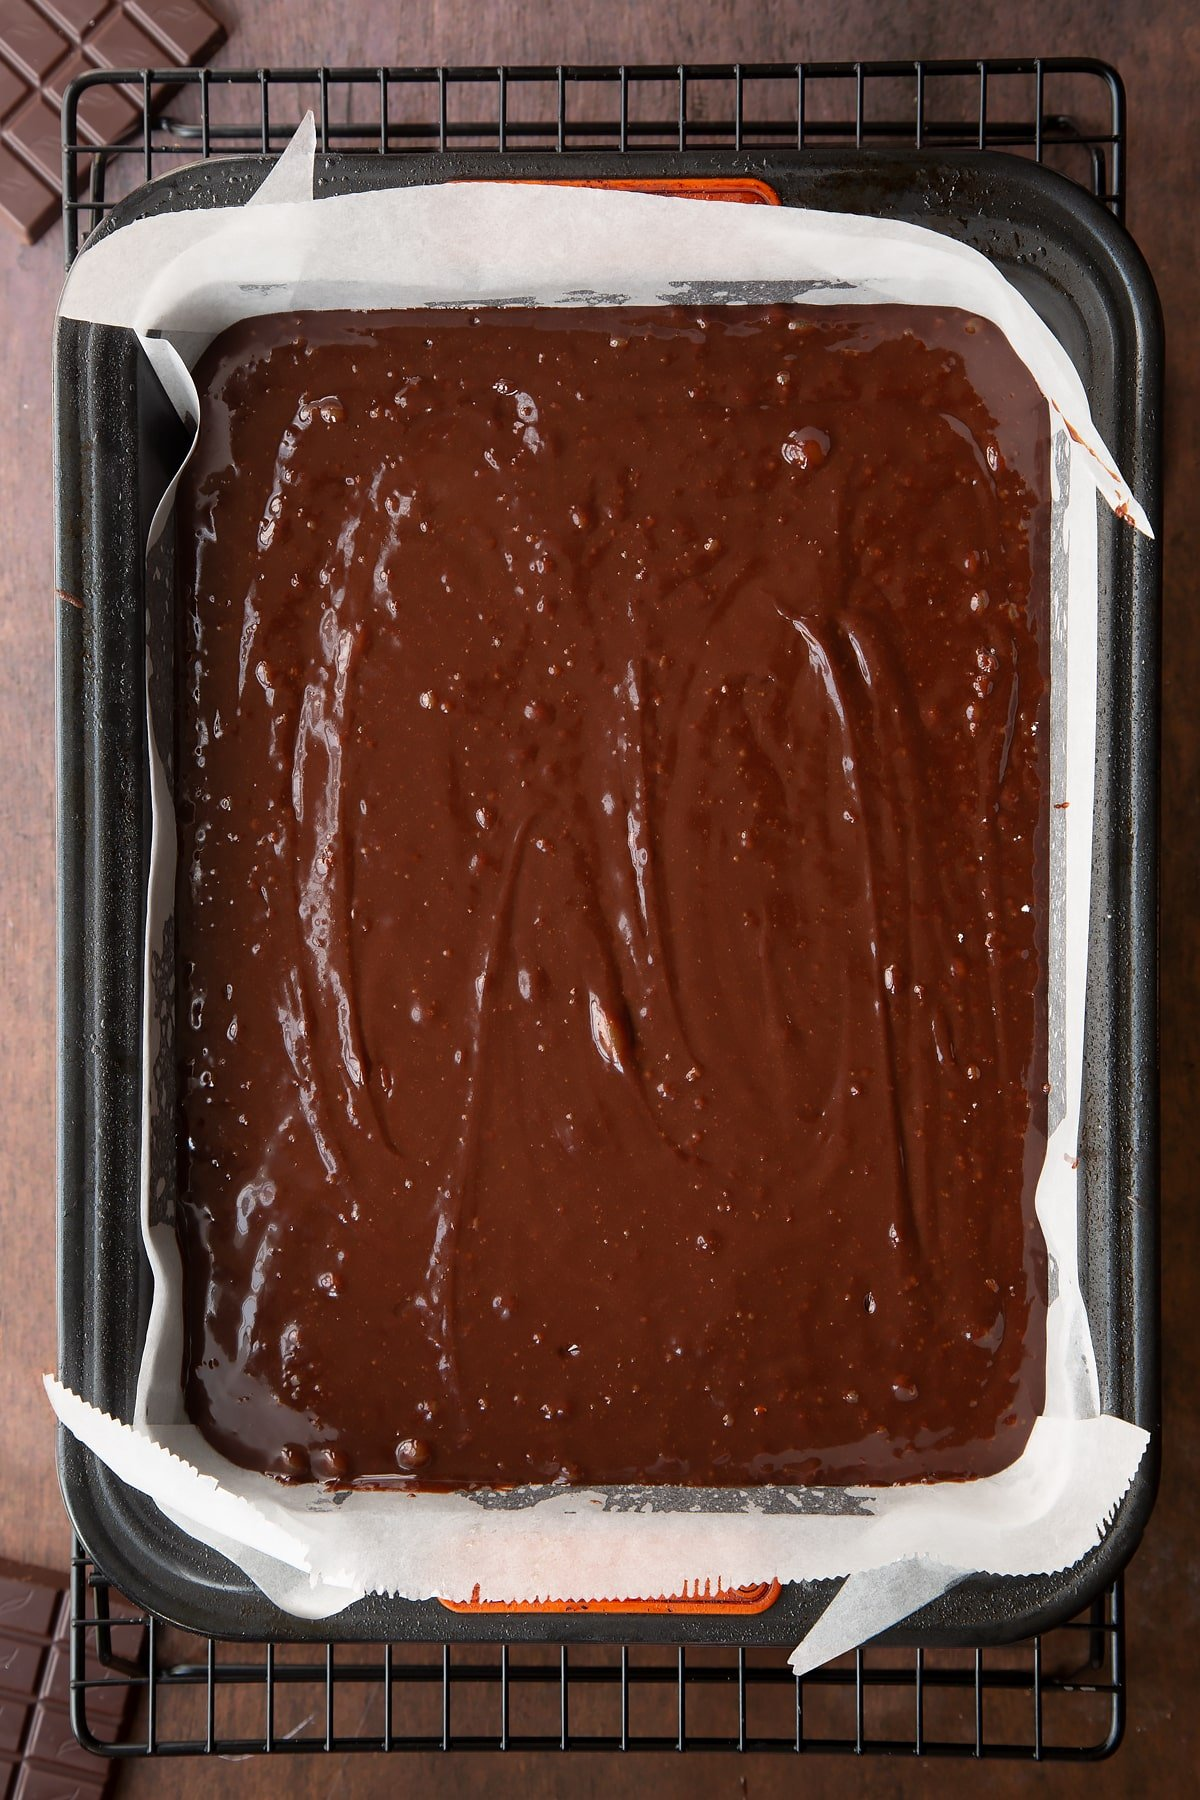 Halloween brownie batter in a greased and lined baking tin.